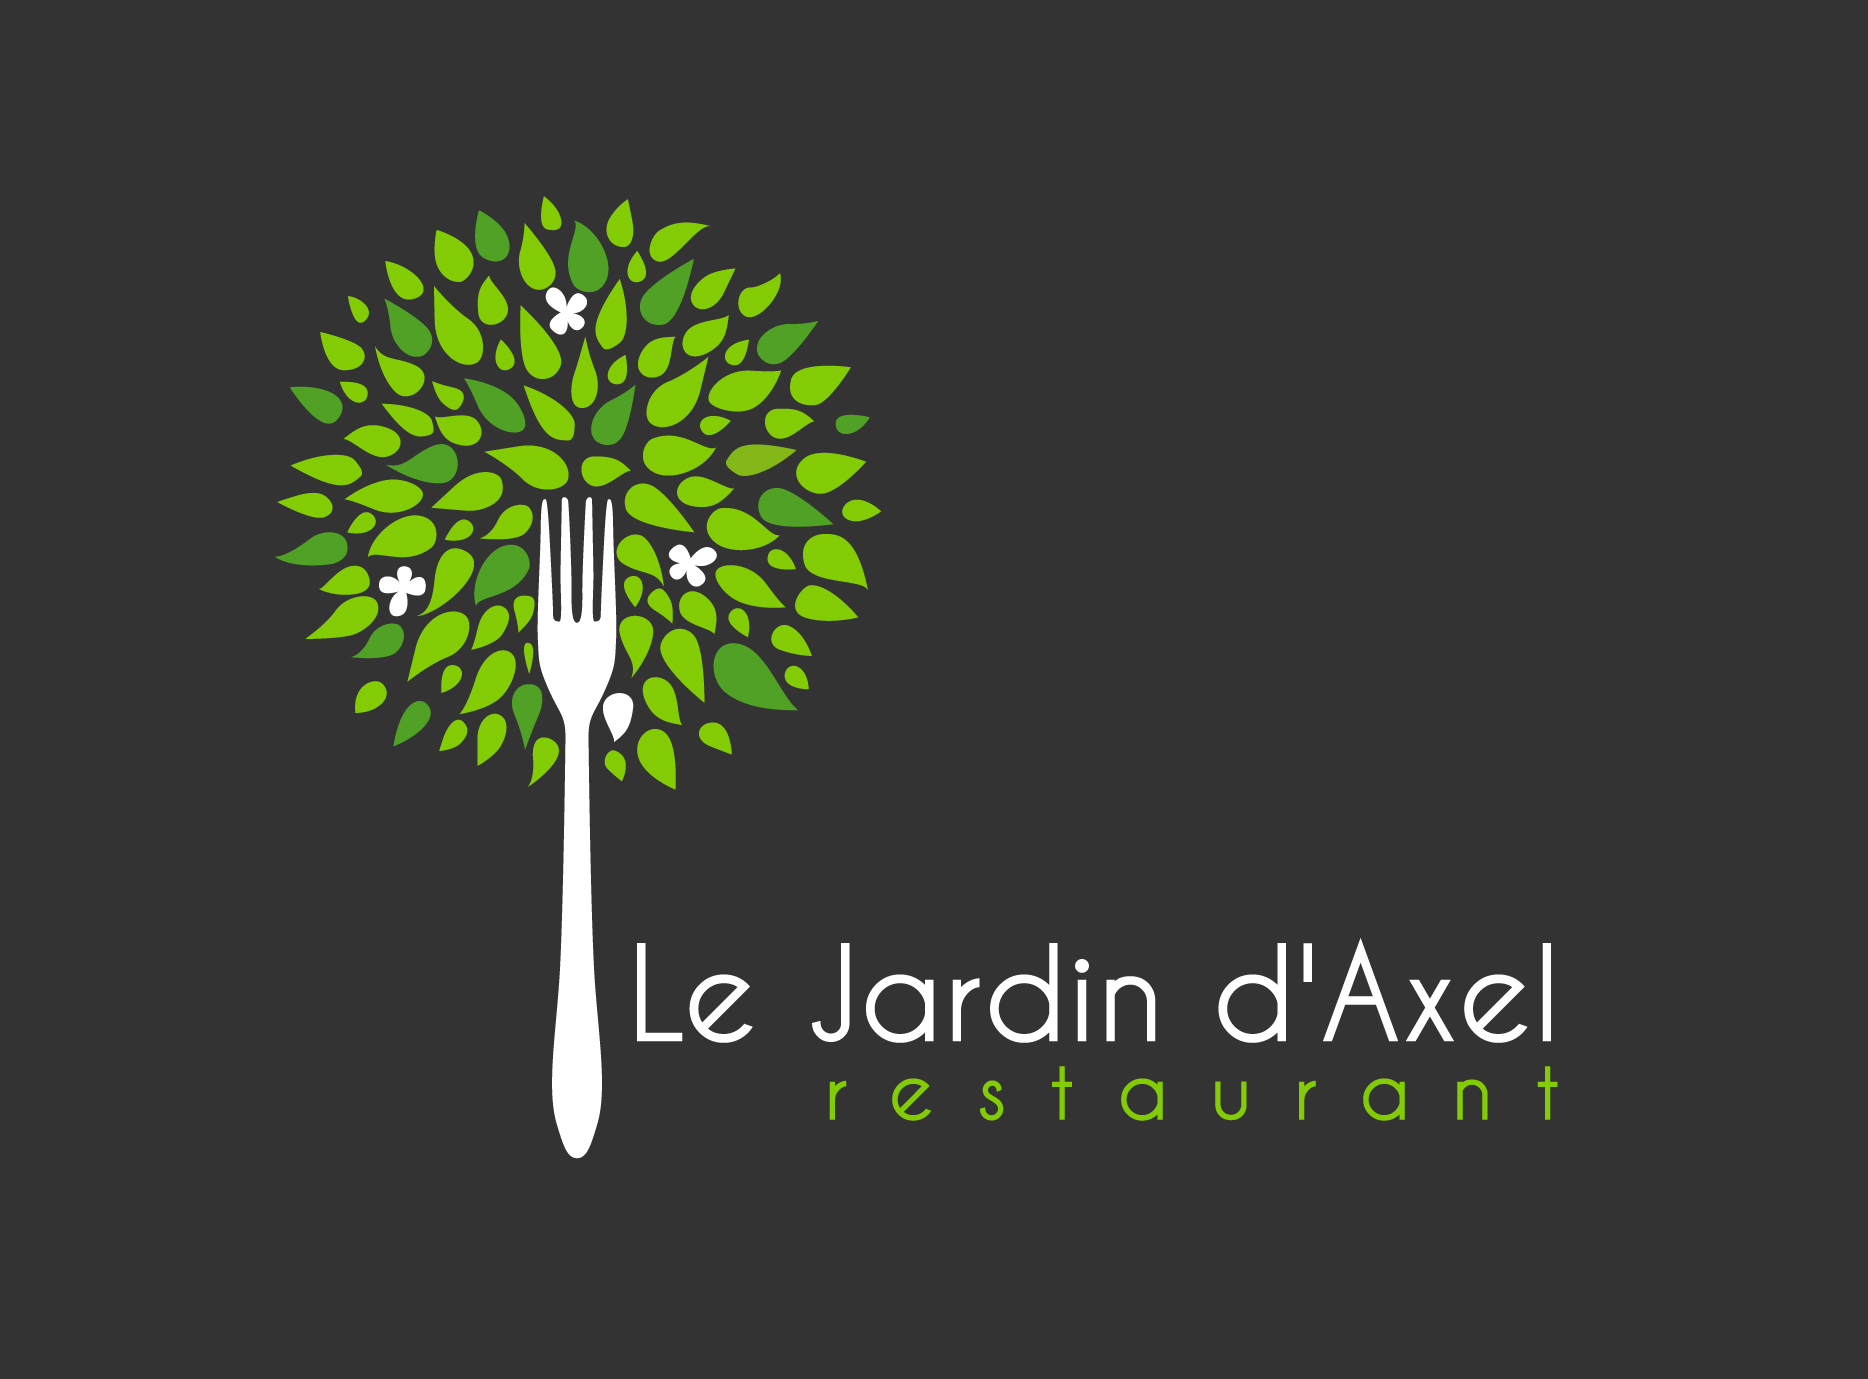 Restaurant le jardin d 39 axel best western marseille for Restaurant le jardin marseille mazargues